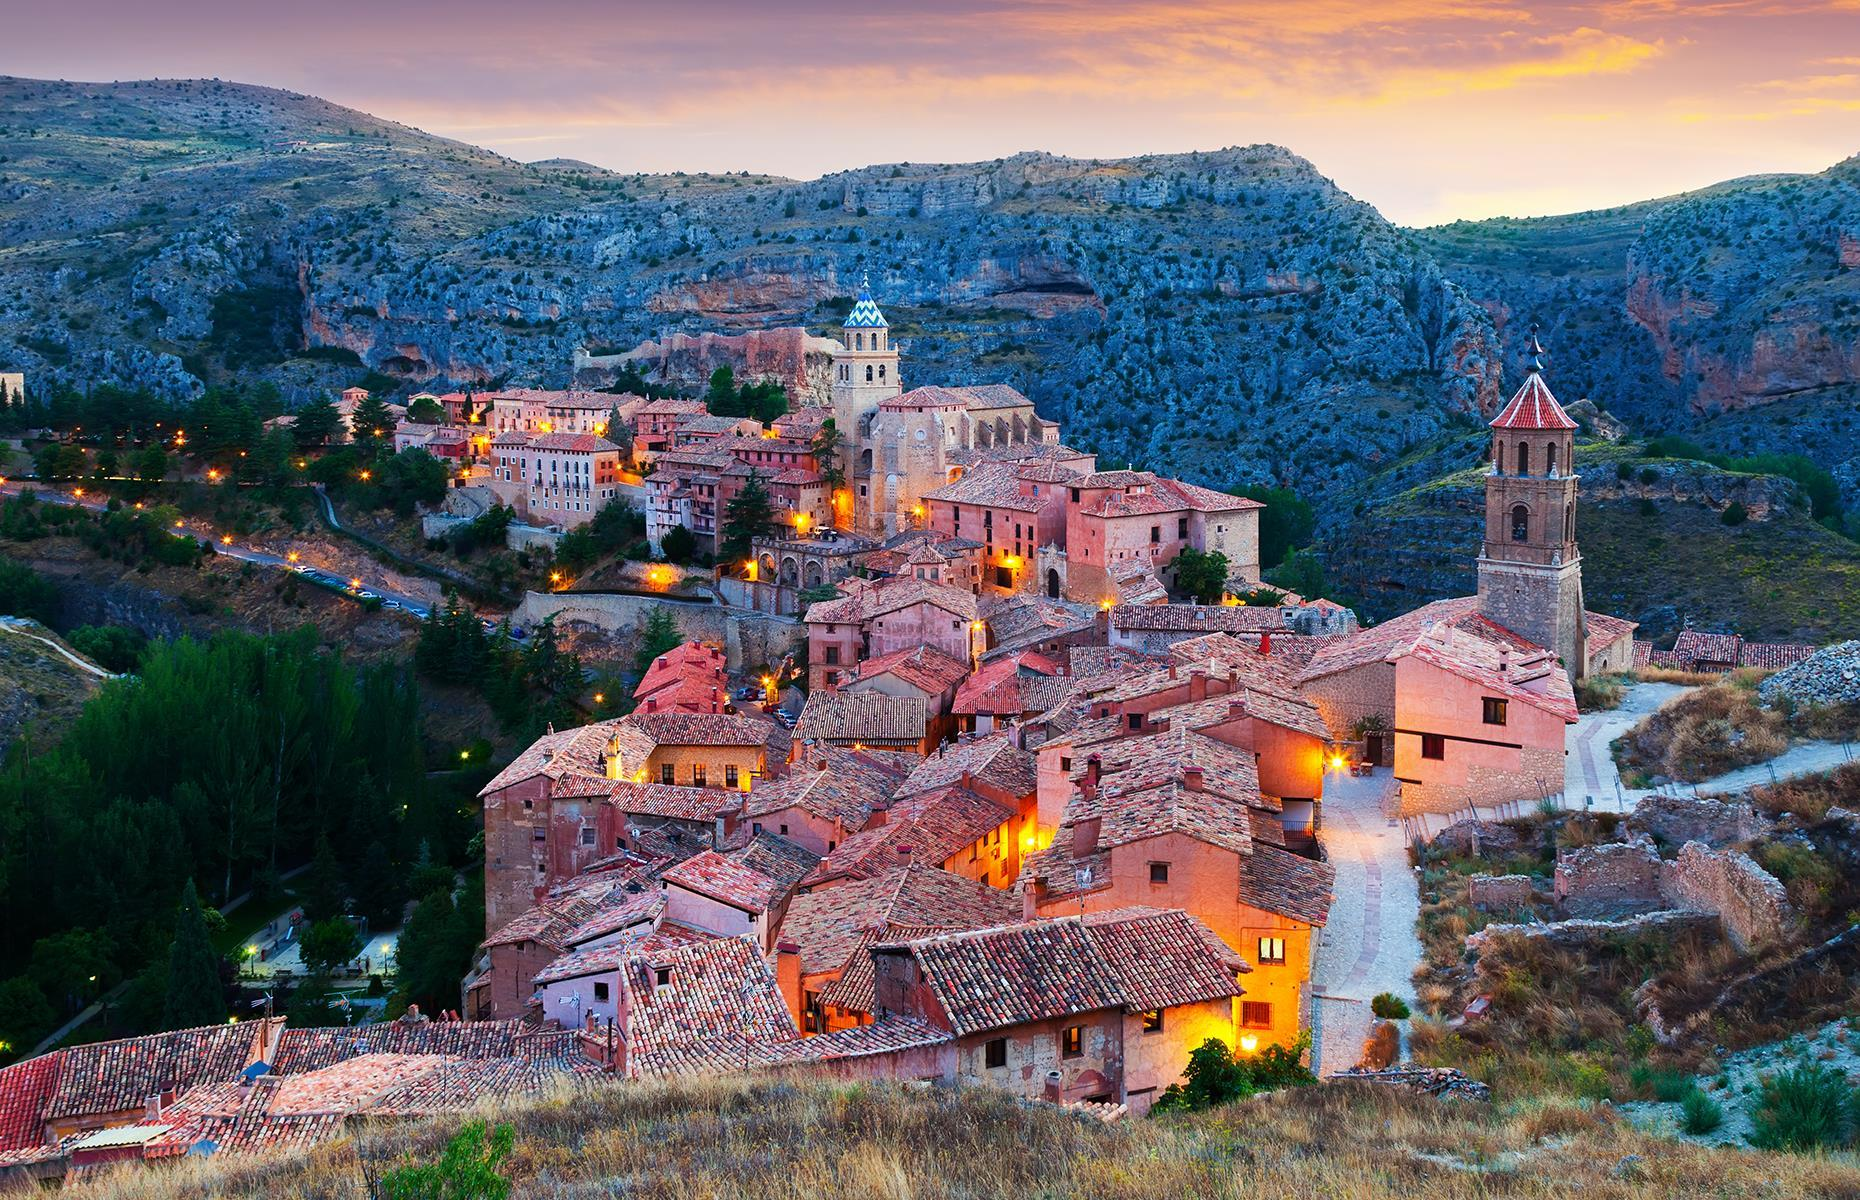 Slide 22 of 31: The tiny town of Albarracín sits prettily in the hills of central Spain, overlooking the Guadalaviar River. The towering medieval walls dominate the hillside while ruins of an old Moorish alcázar sit on a clifftop above the town, adding to the fairy-tale feel.